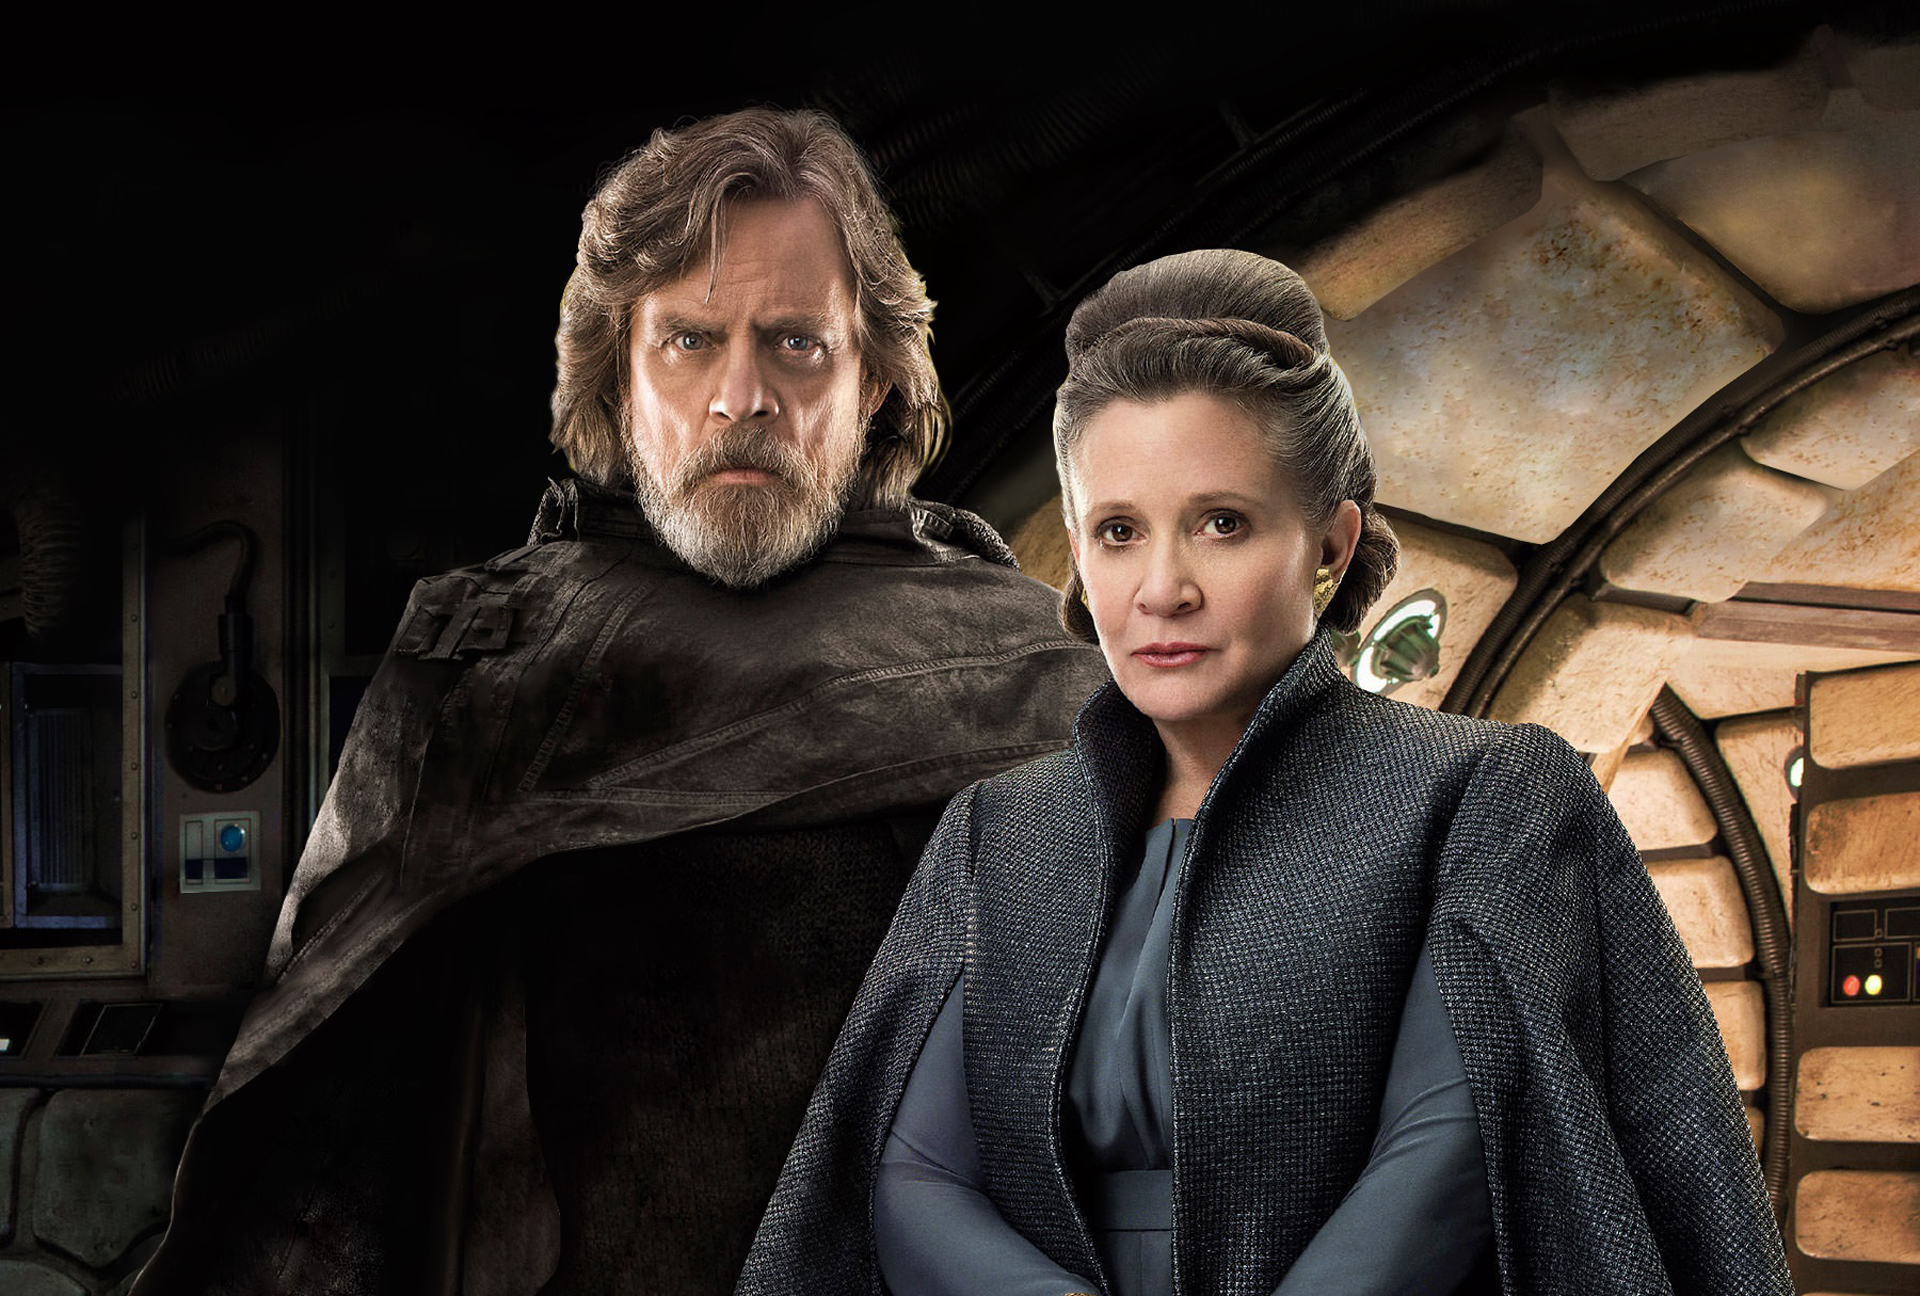 princess leia and luke skywalker in star wars the last jedi movie qn